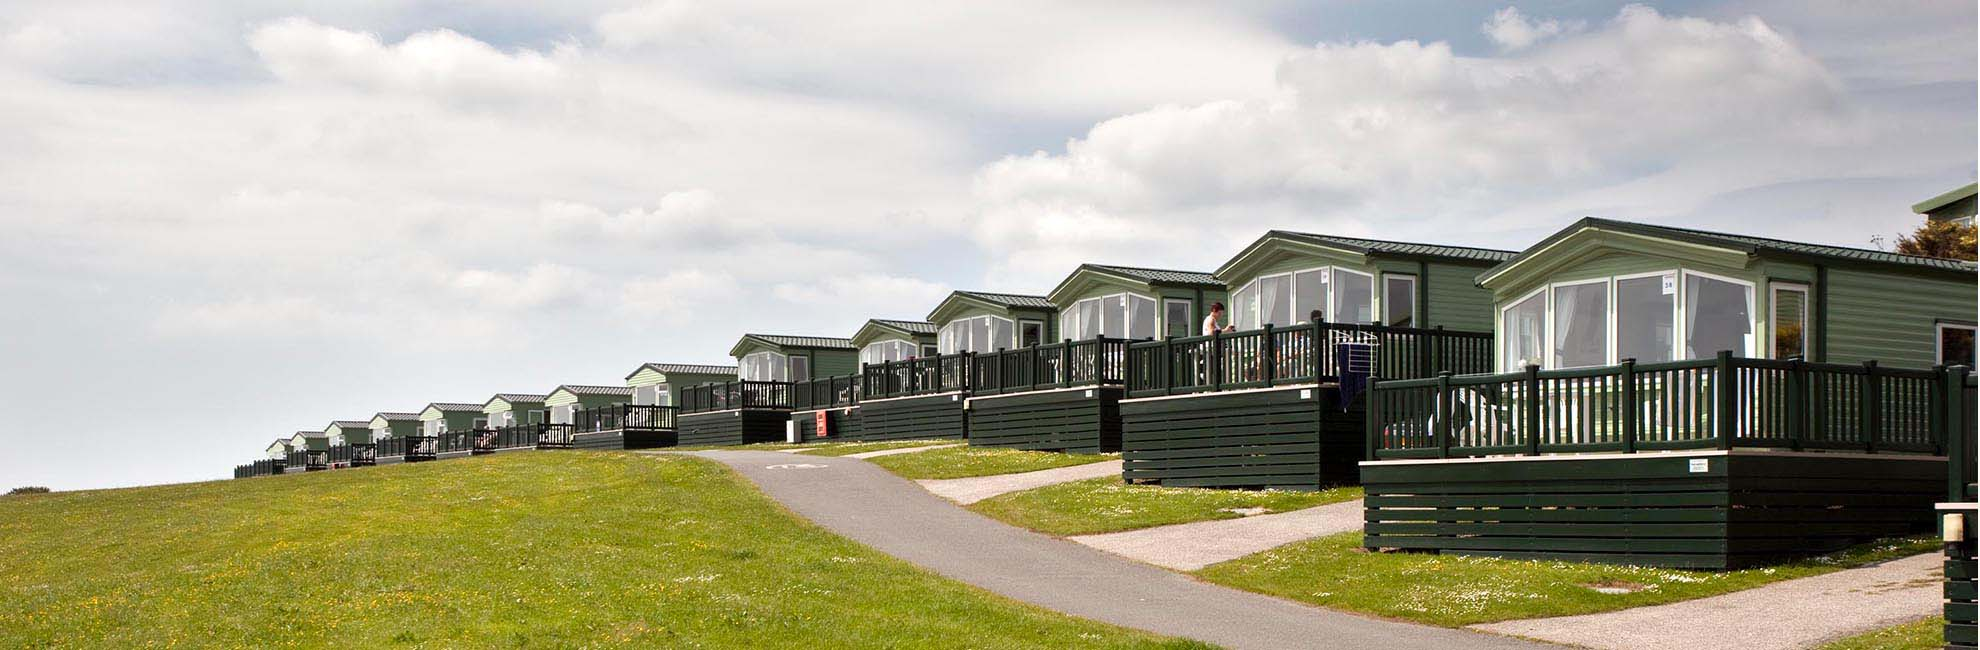 Lodges with verandas at Sea Acres Holiday Park